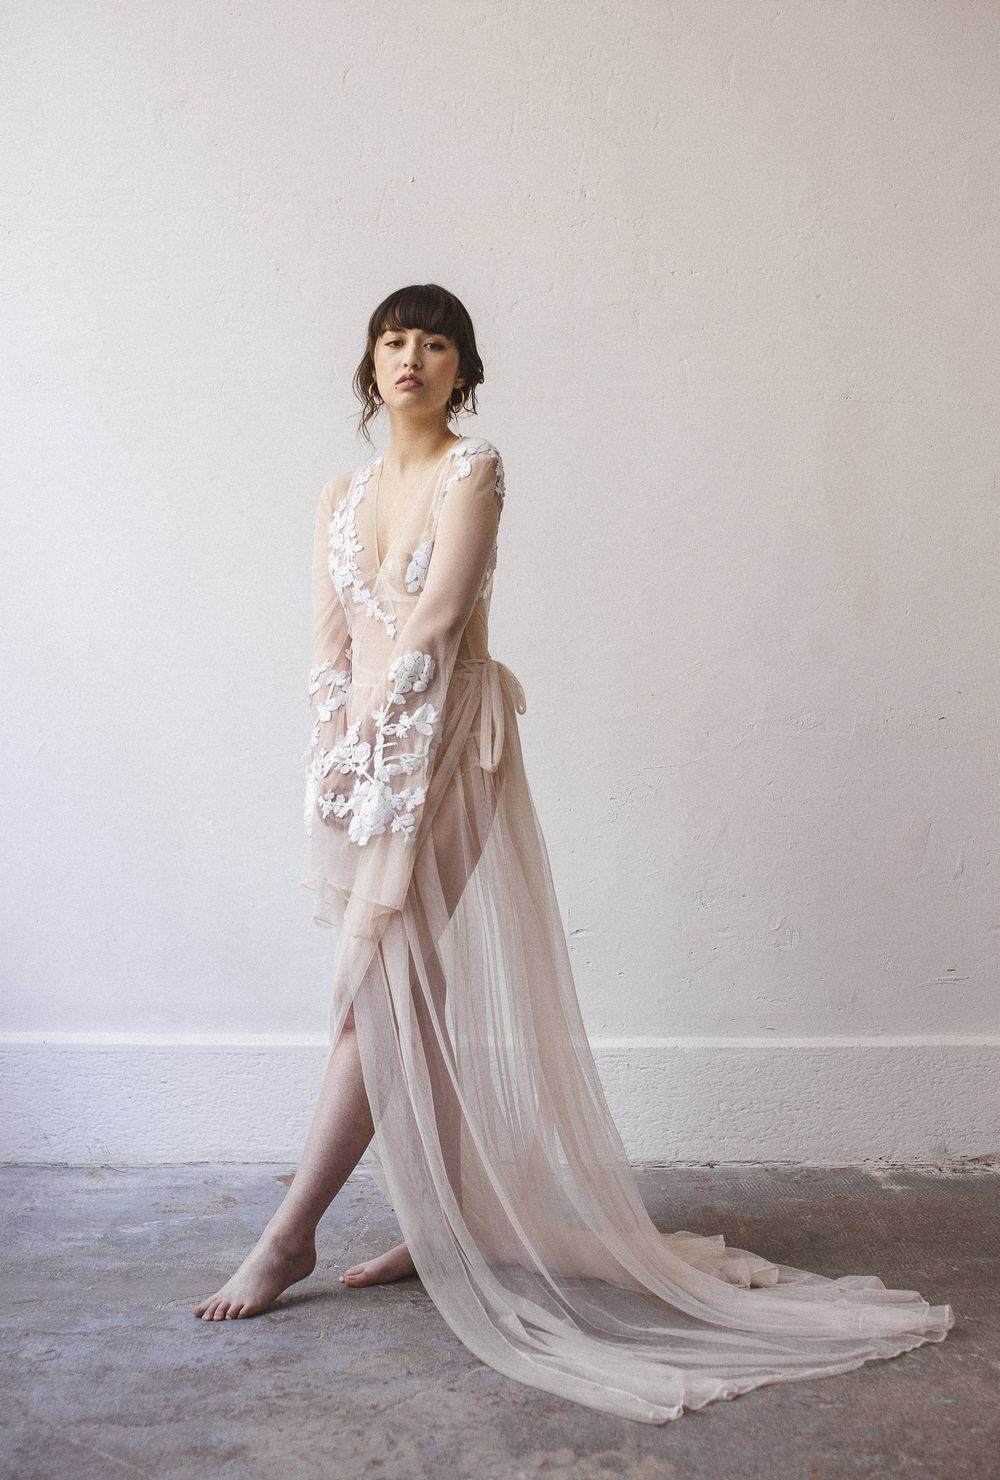 Delicate French Lace From The Atelier For Our Anese Inspired Bridal Shoot Photo